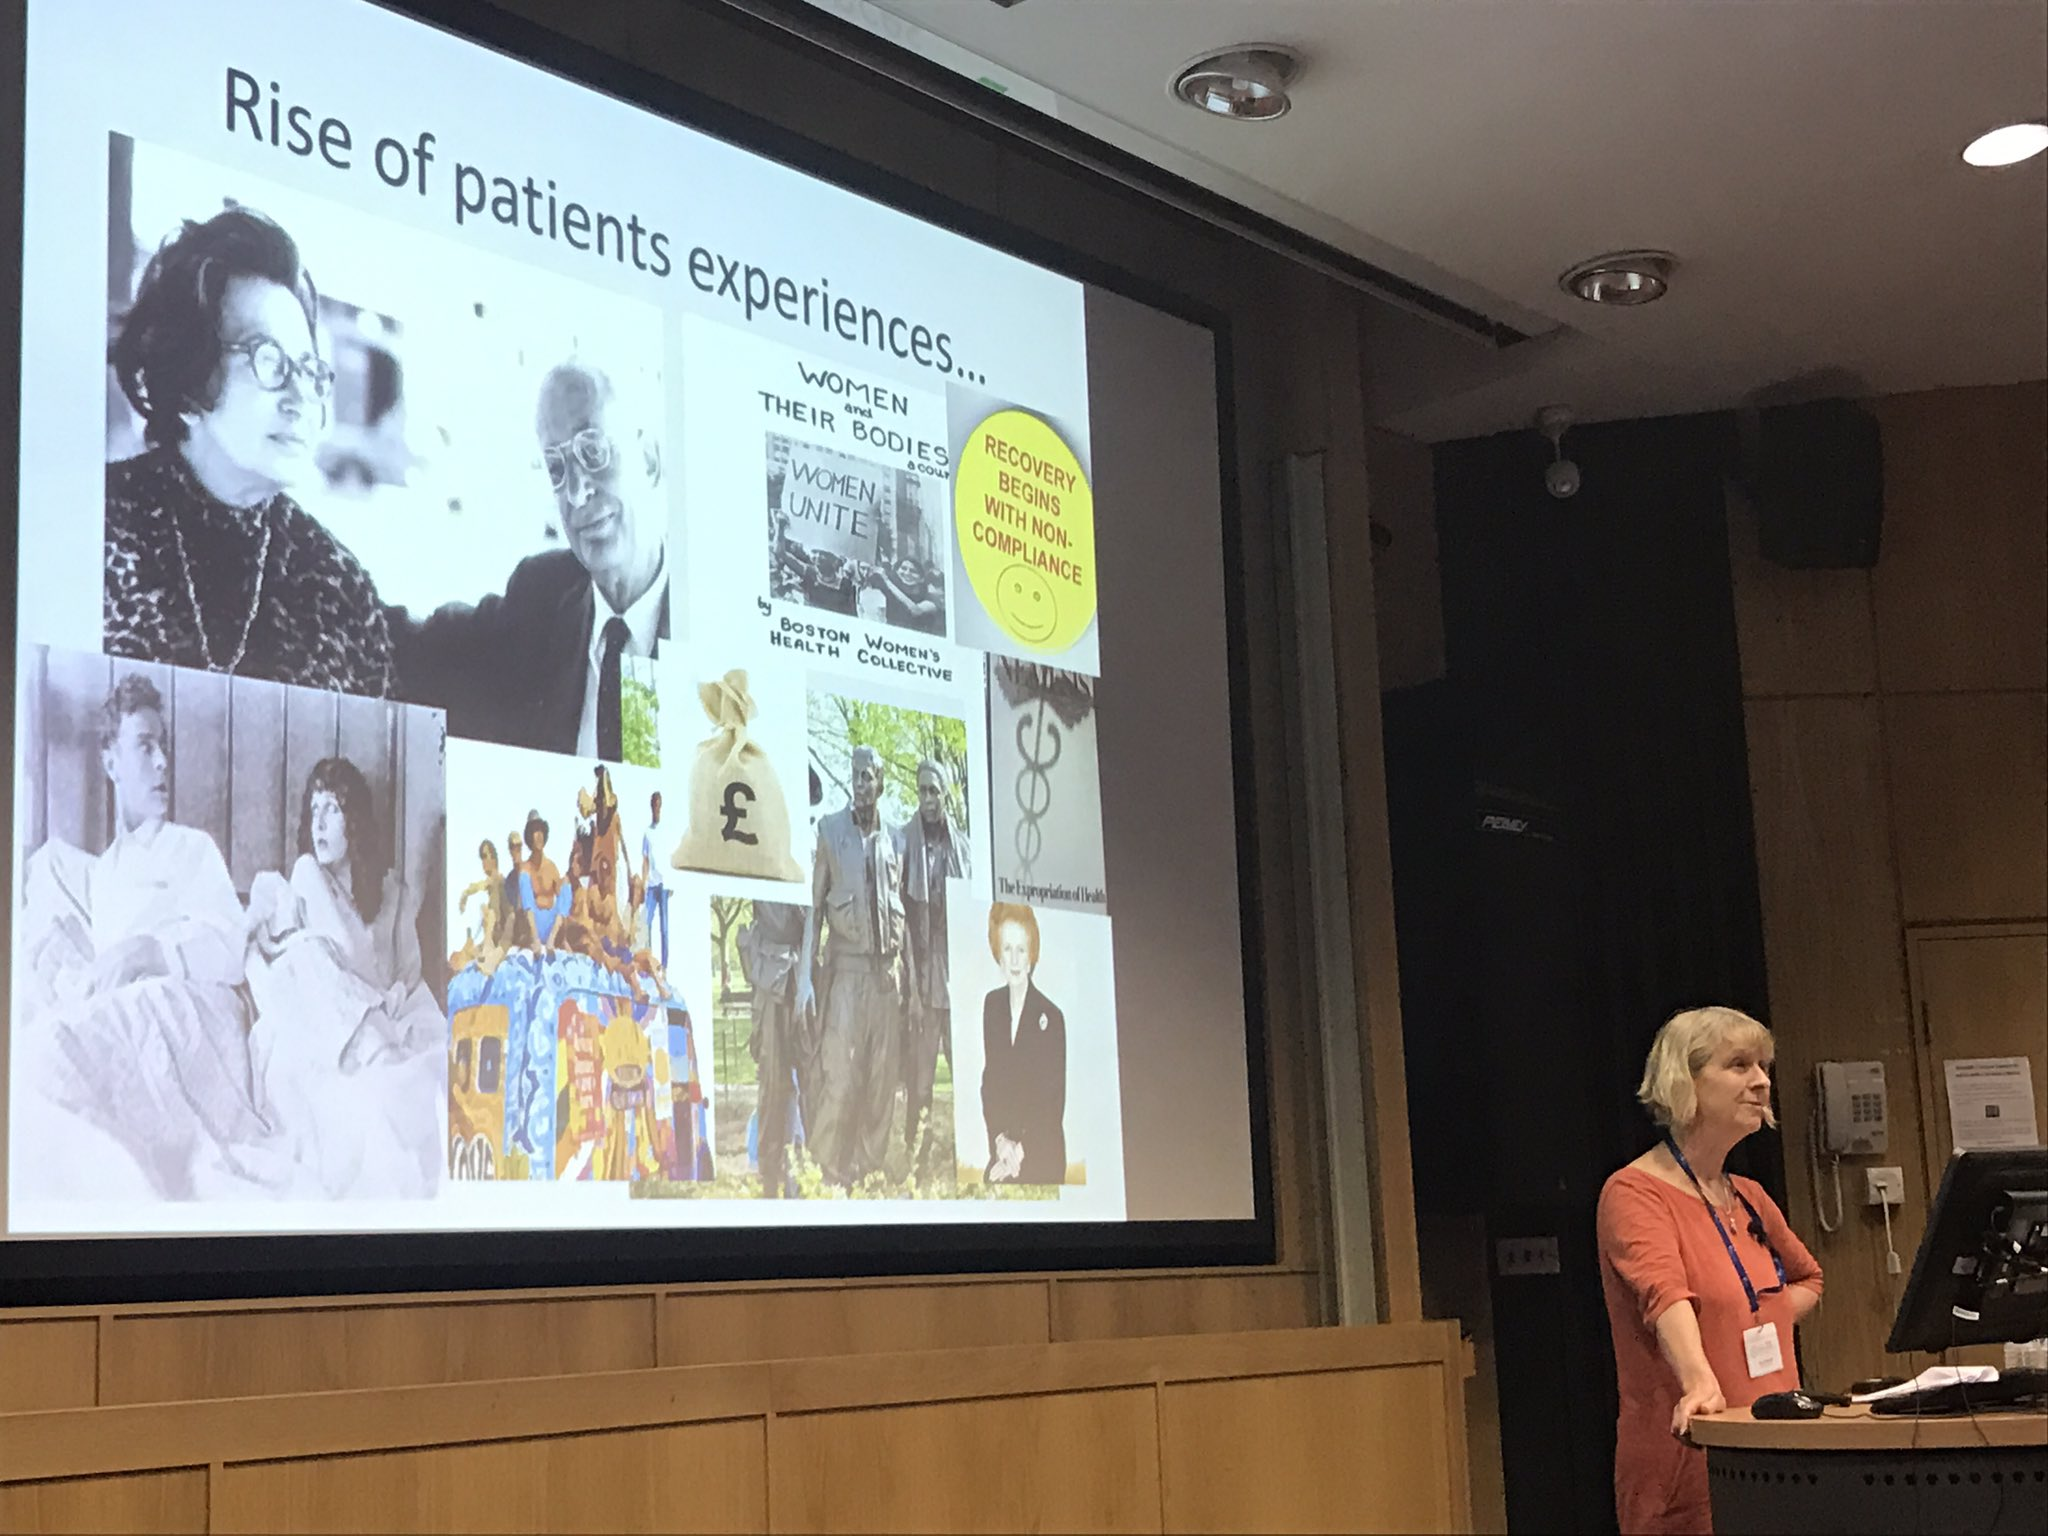 @sueziebland talks about the rise of patient's experiences #hsrpp2017 https://t.co/KxU1Ms6bHc